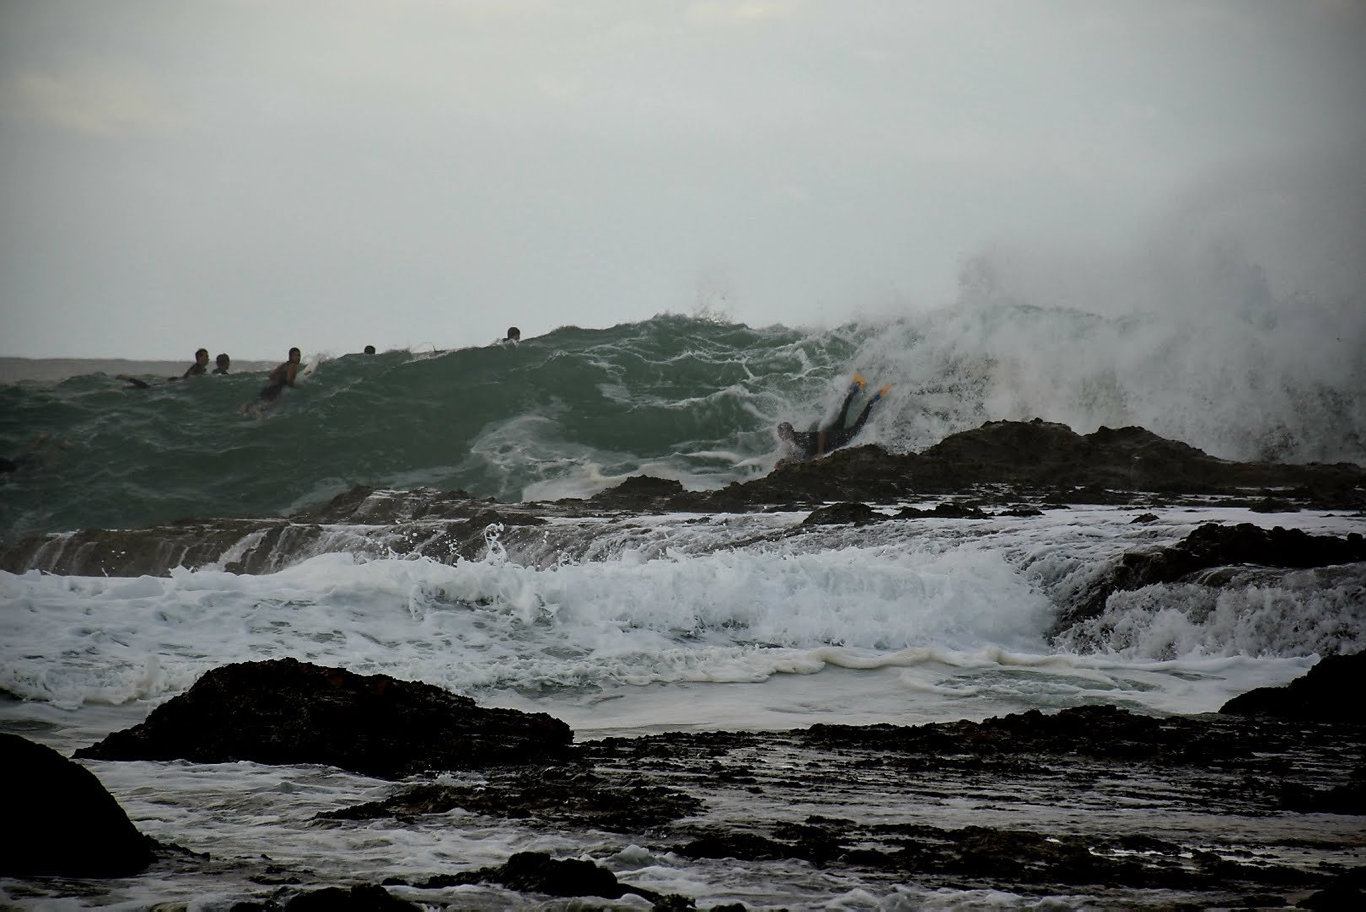 Surfers make the most of the big swell at Snapper Rocks.